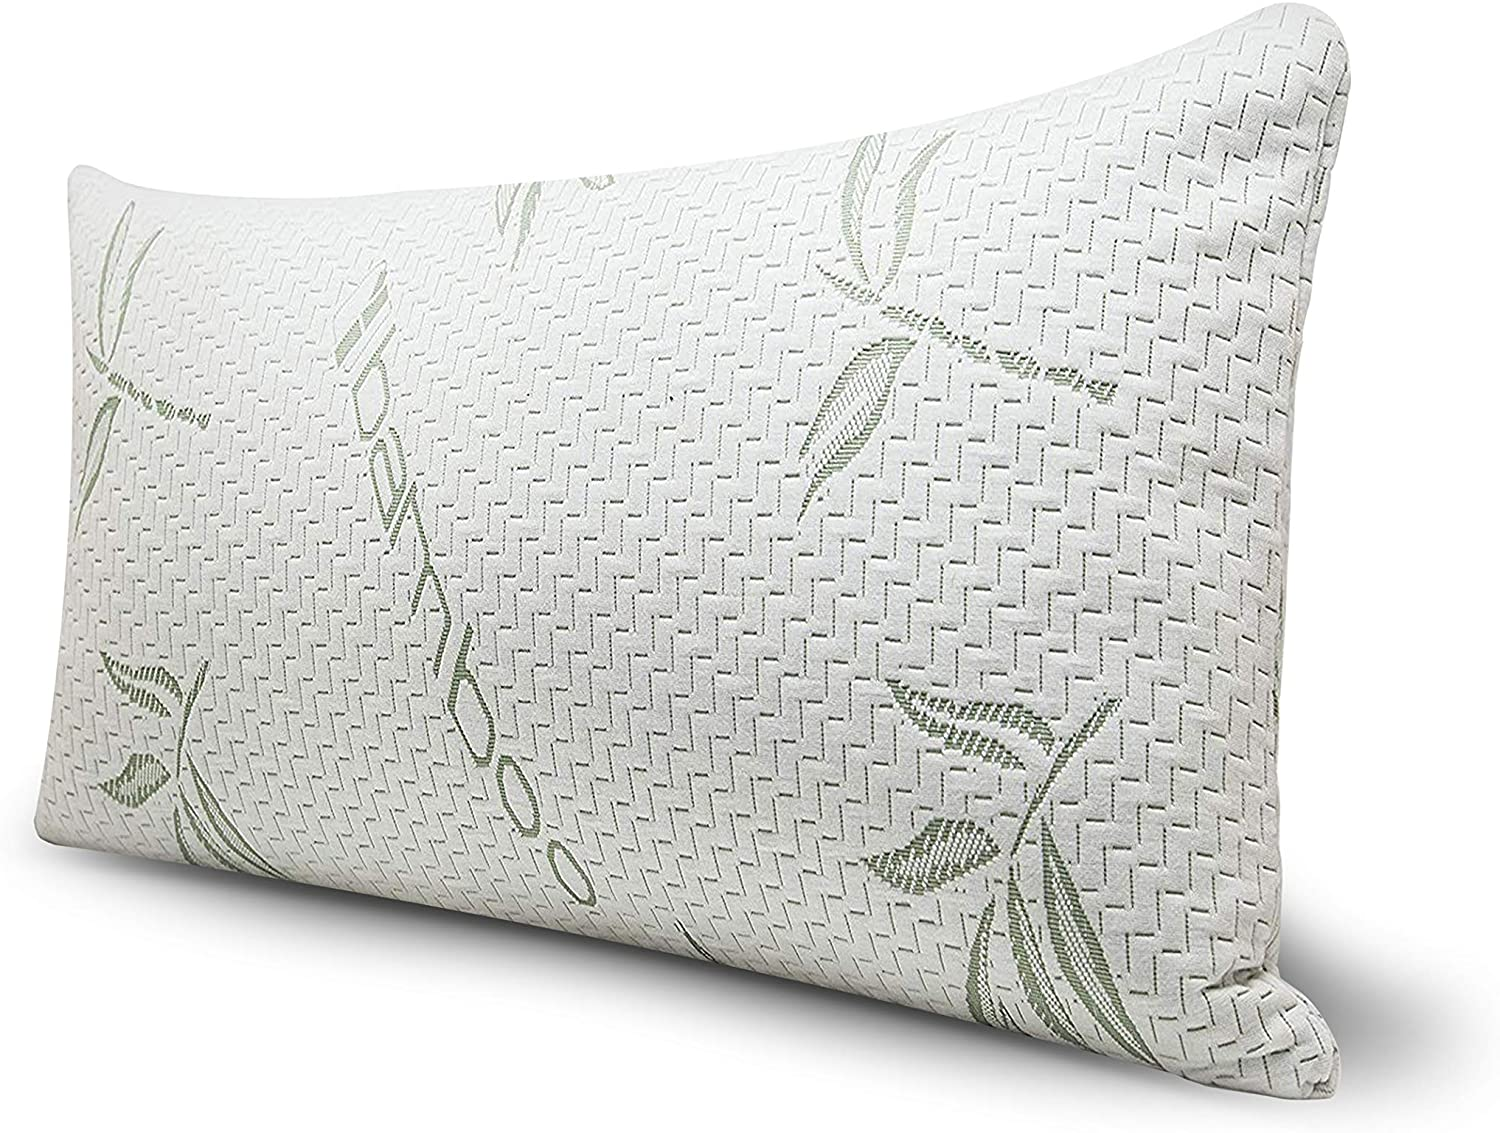 grenny green bamboo bed pillow for sleeping 1 pack shredded memory foam bed pillow with bamboo rayon hypoallergenic cover queen size 1 pack